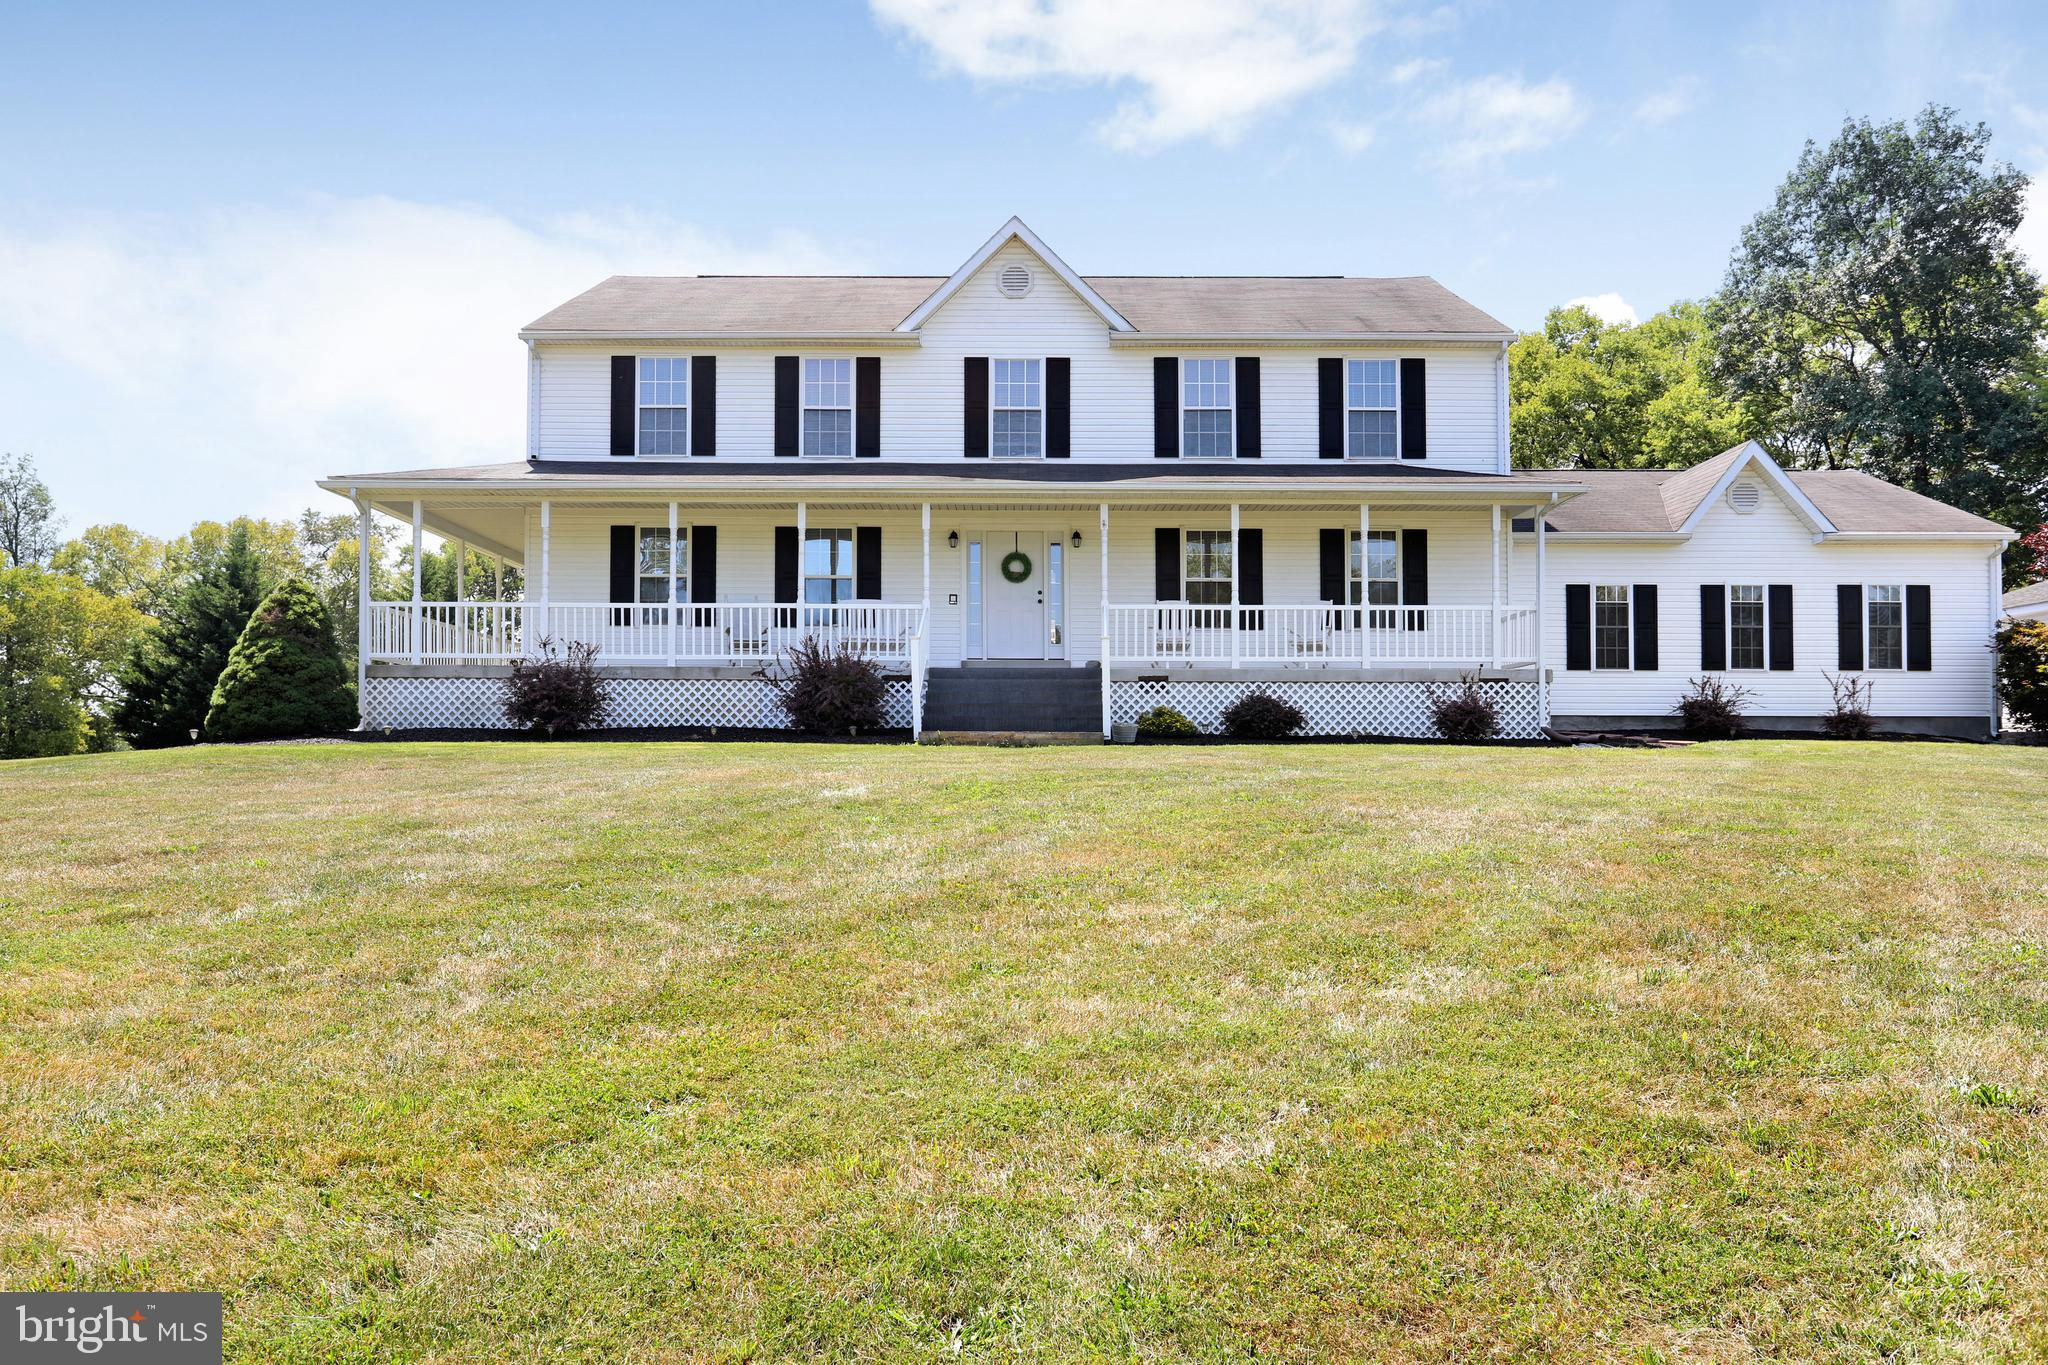 Country home on spacious lot with privacy and no restrictions- 5 br  3 1/2 ba--Hardwoods through out